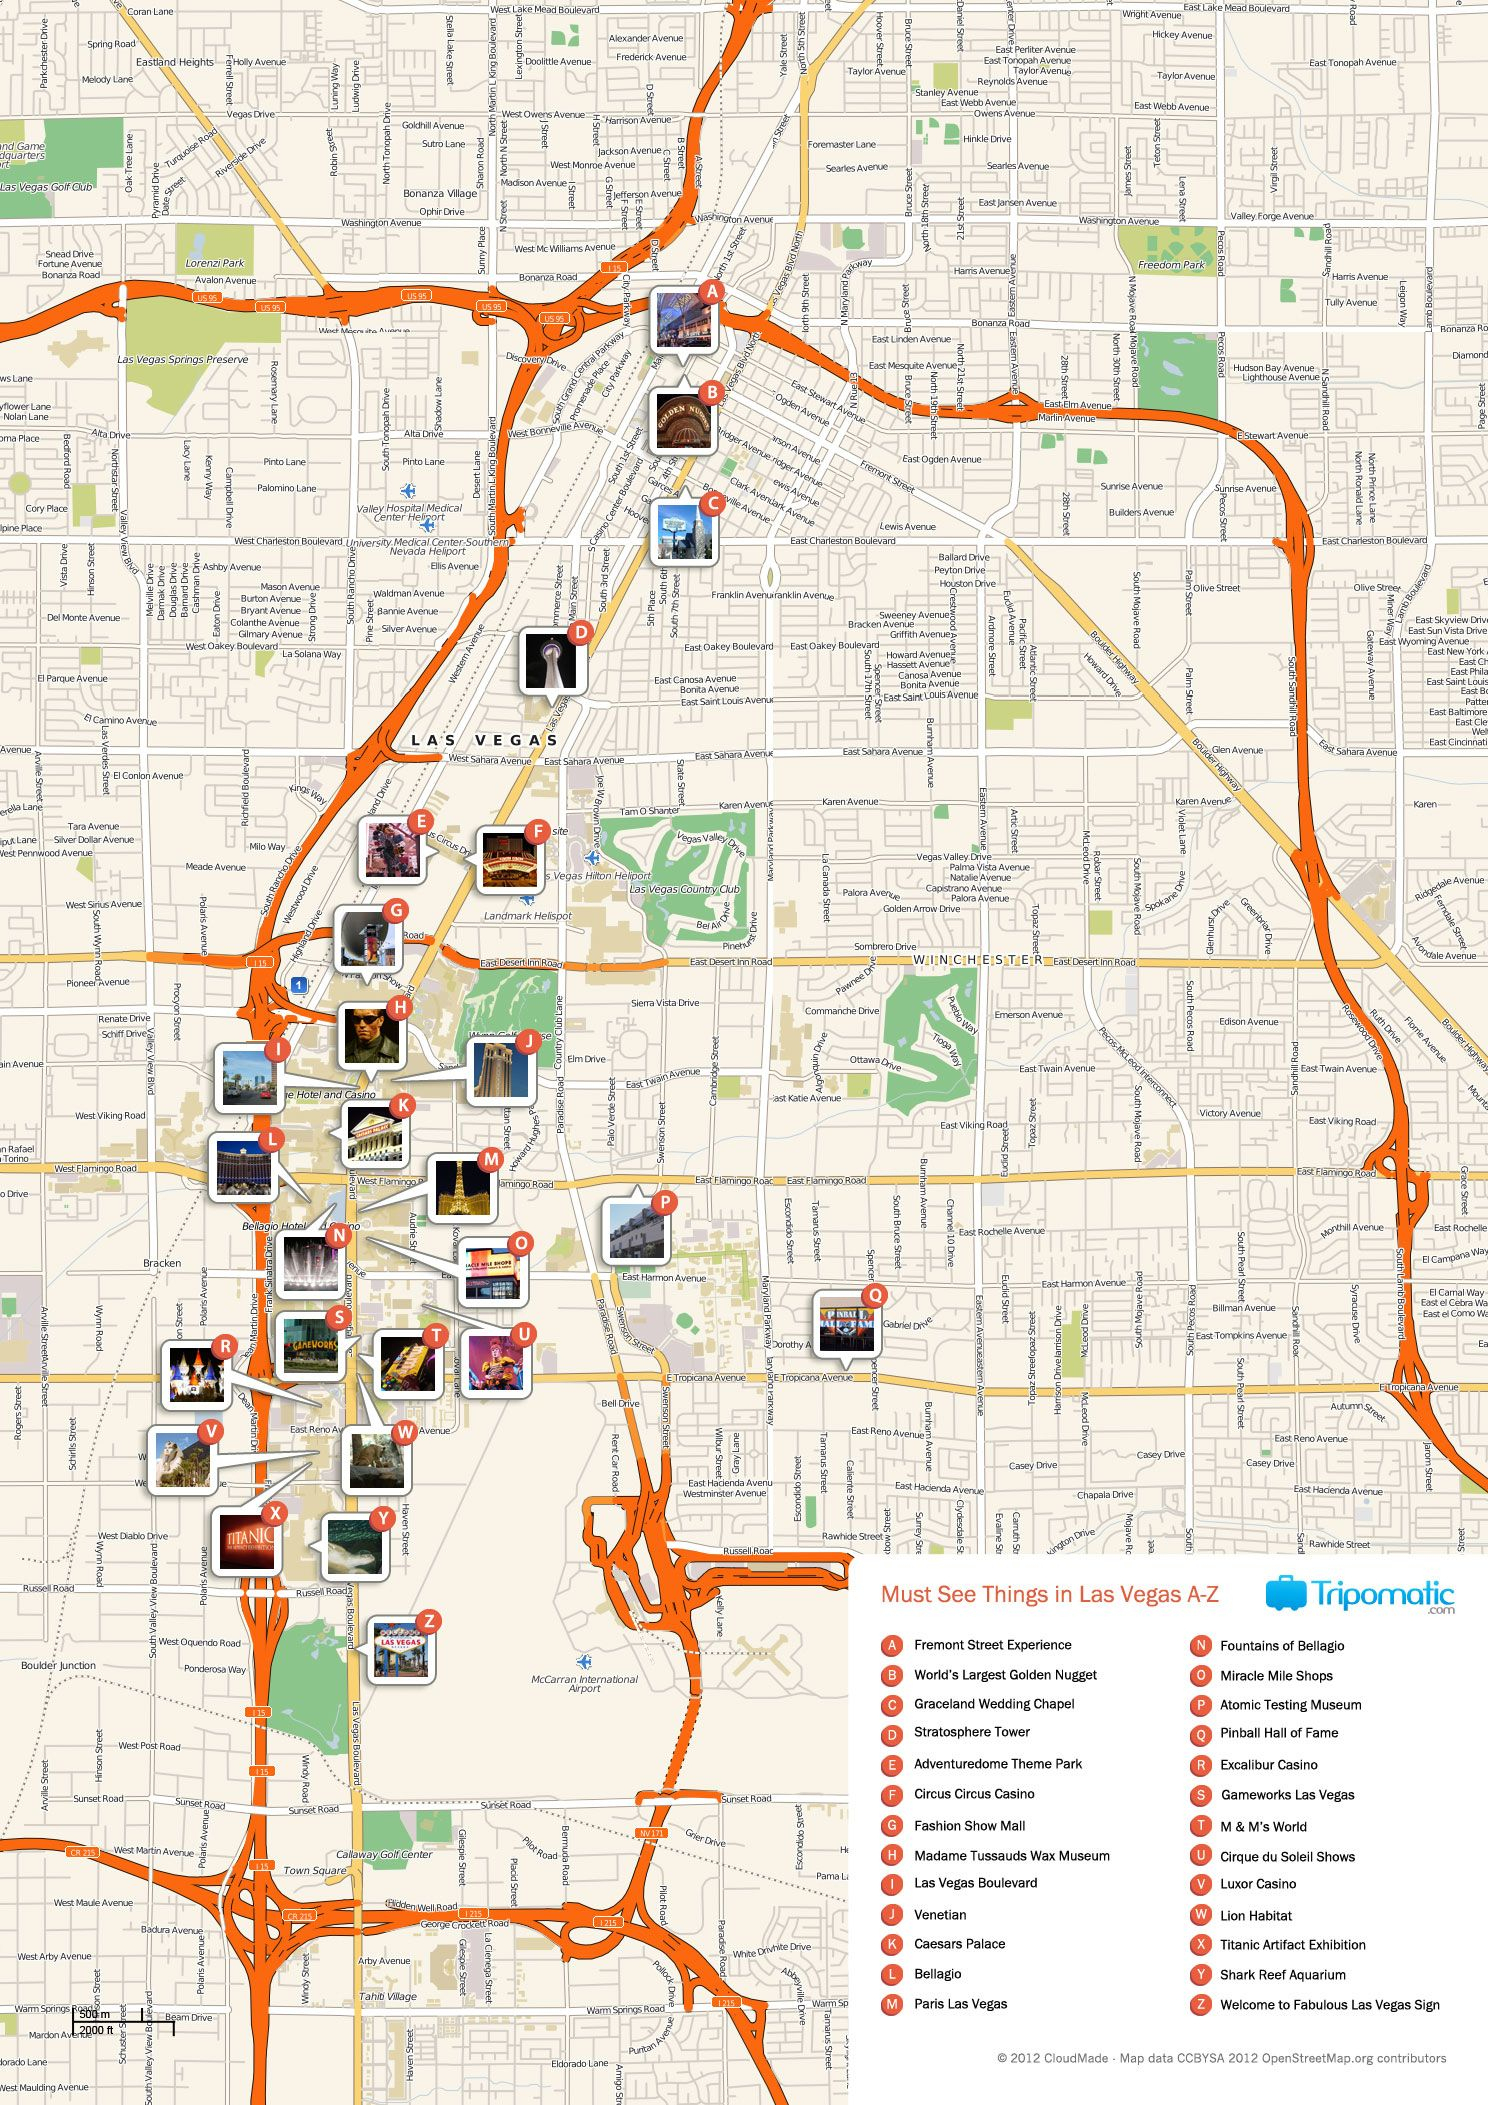 Free Printable Map Of Las Vegas Attractions. | Free Tourist Maps - Free Printable Las Vegas Coupons 2014